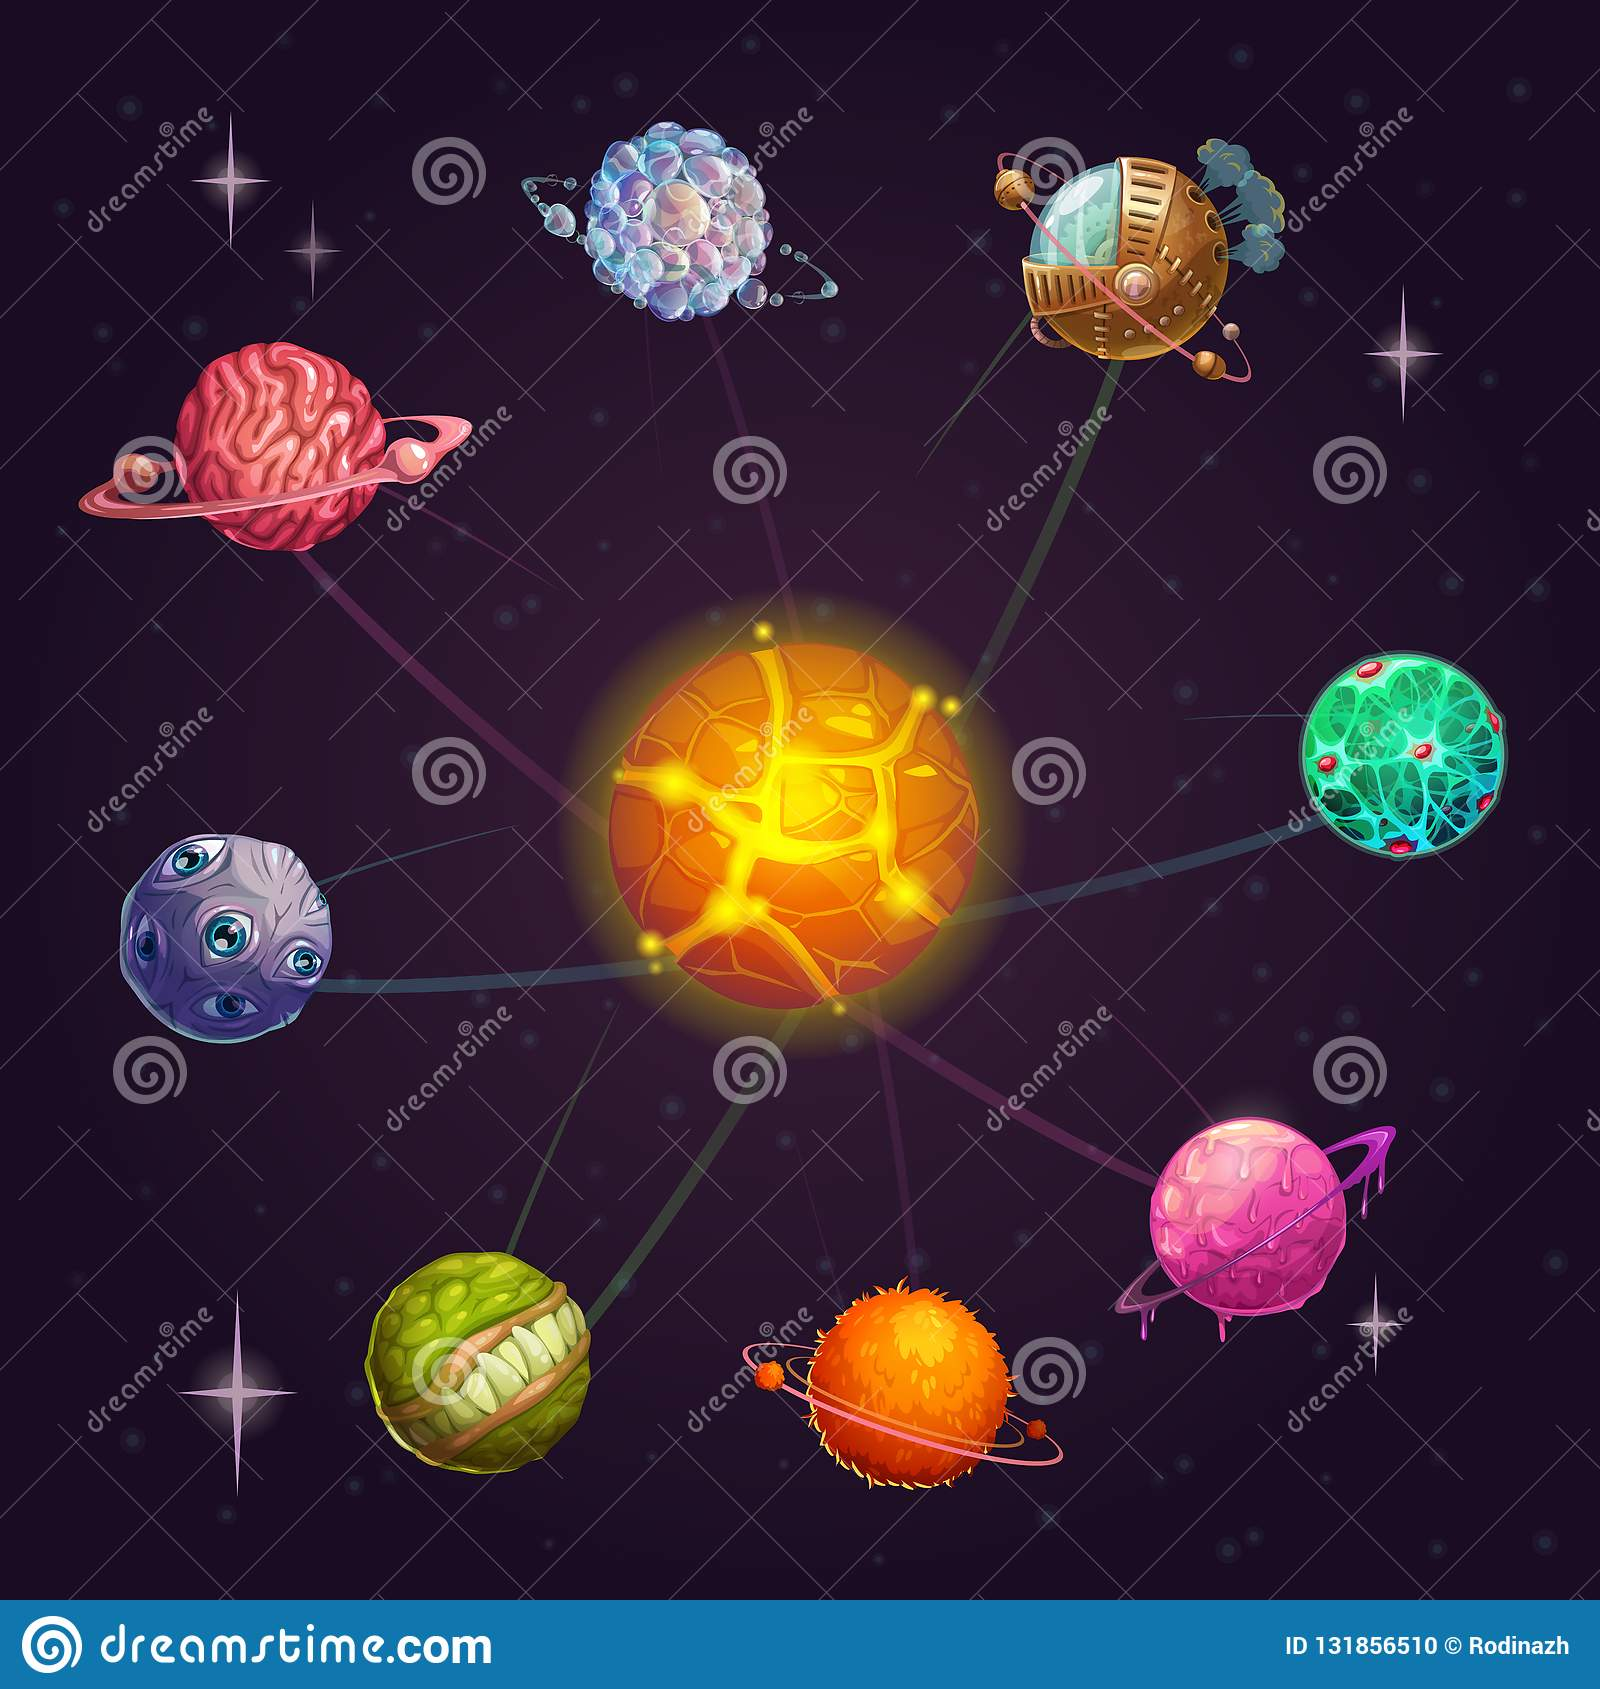 Fantasy alien solar system with star and unusual planets. Vector space illustration.